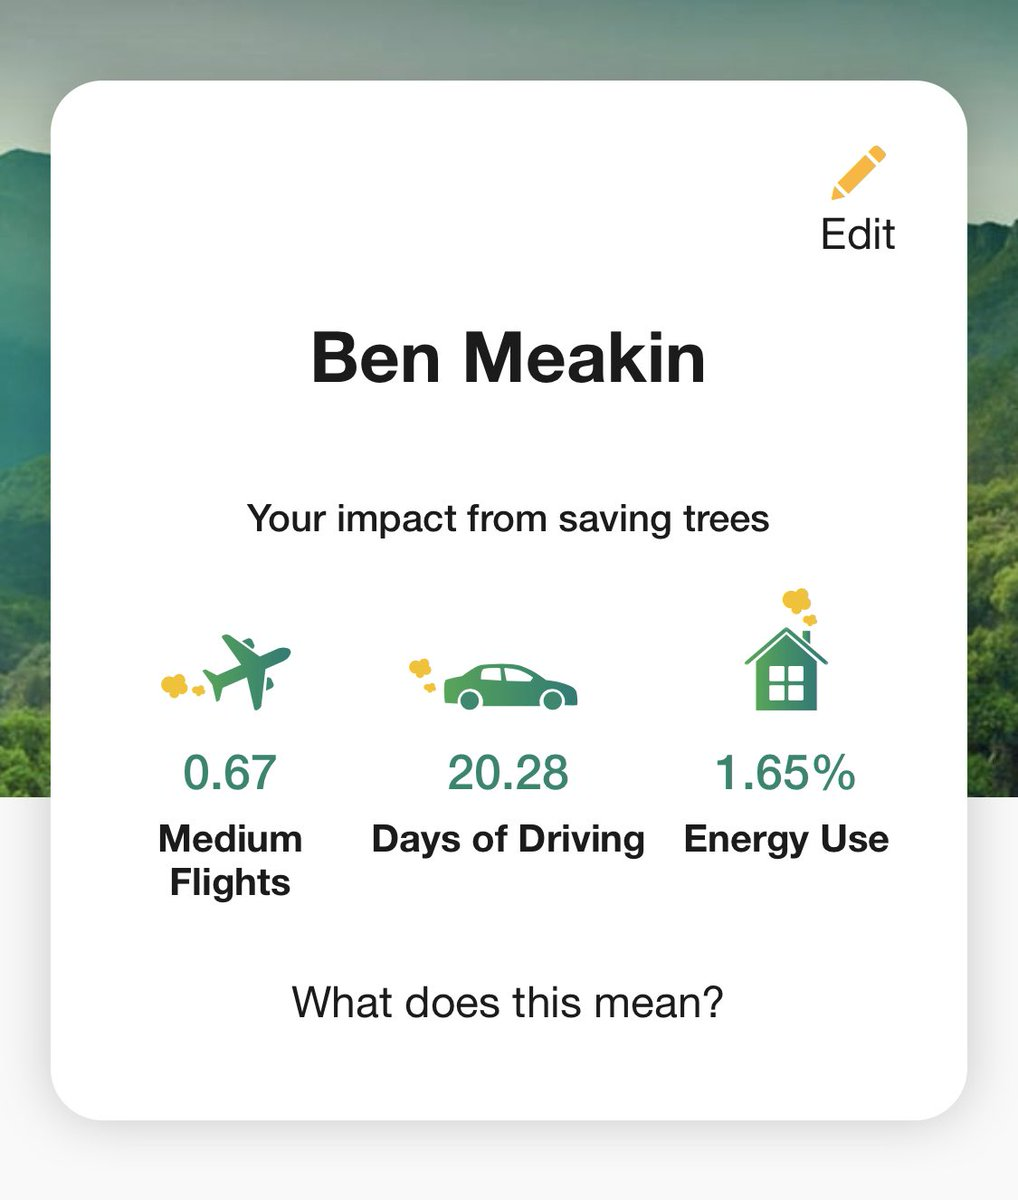 Wow, I've been signed up to @Mytreesofficial for just around a month and already won £10, but more importantly here's the carbon I've offset 🤘🏻🌳🌲🌿 #savetheplanet https://t.co/RCNv896rTf